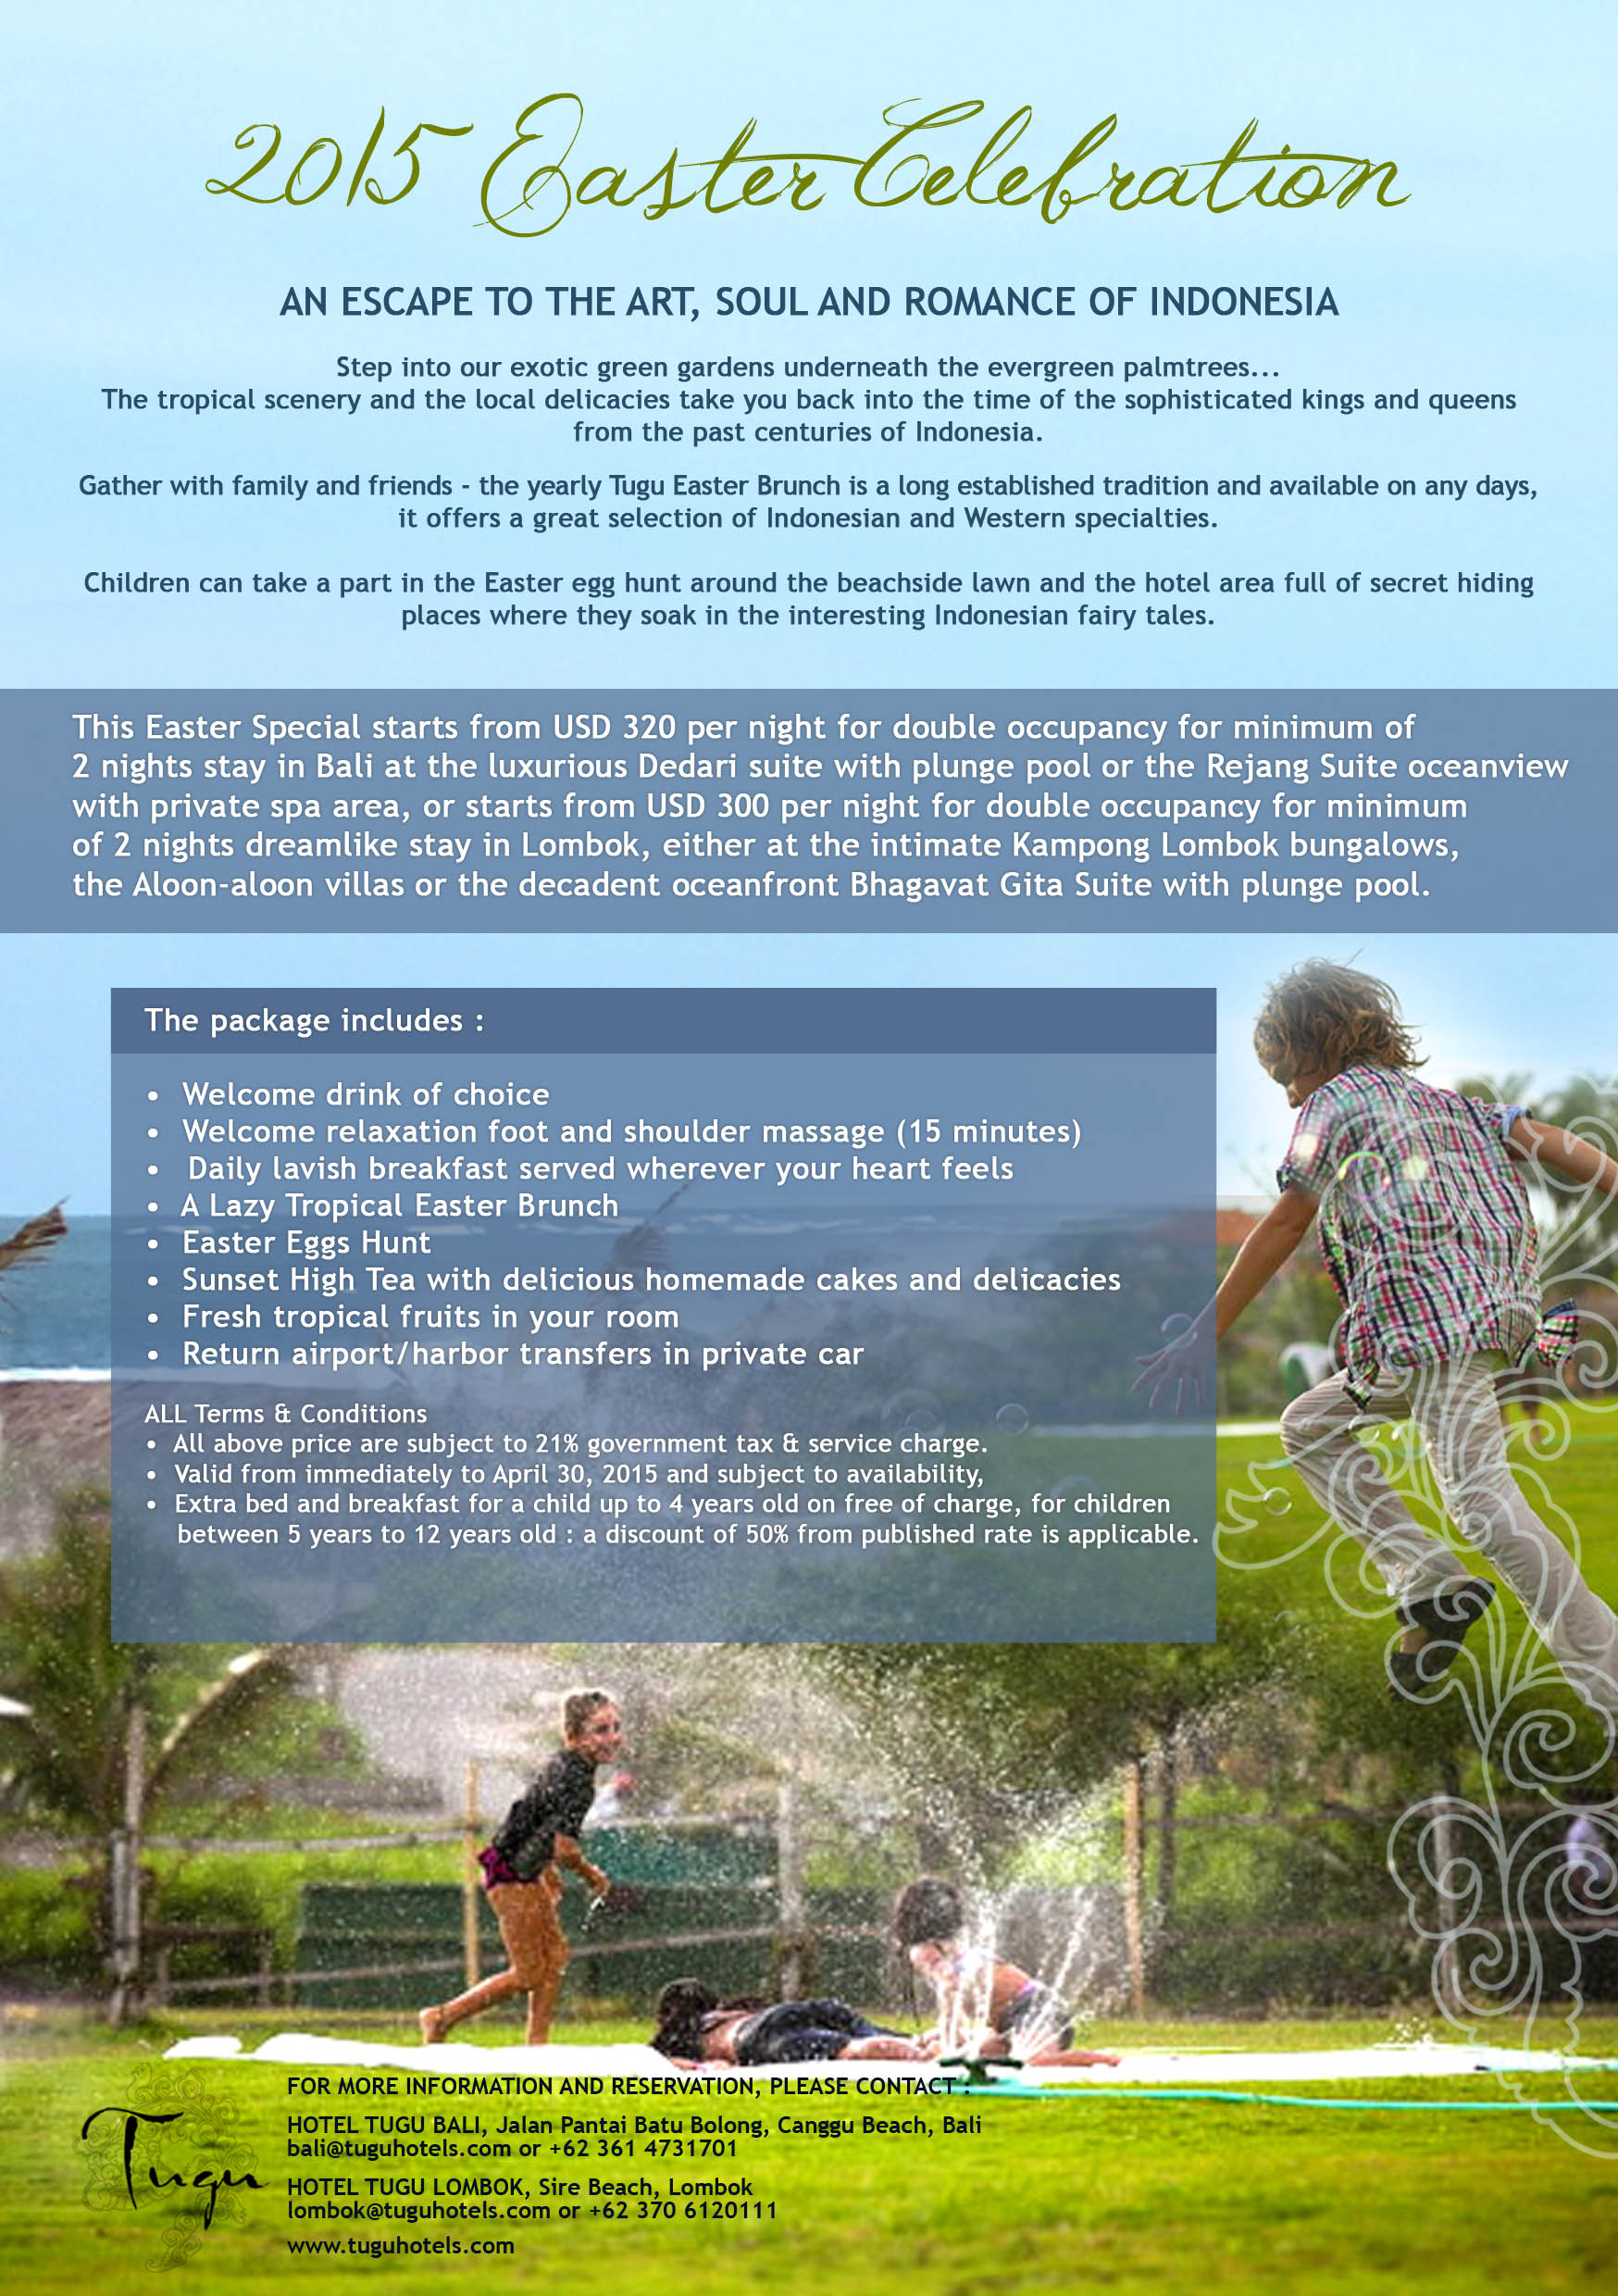 HOTEL TUGU BALI Archives - Page 22 of 32 - What's on @Tugu